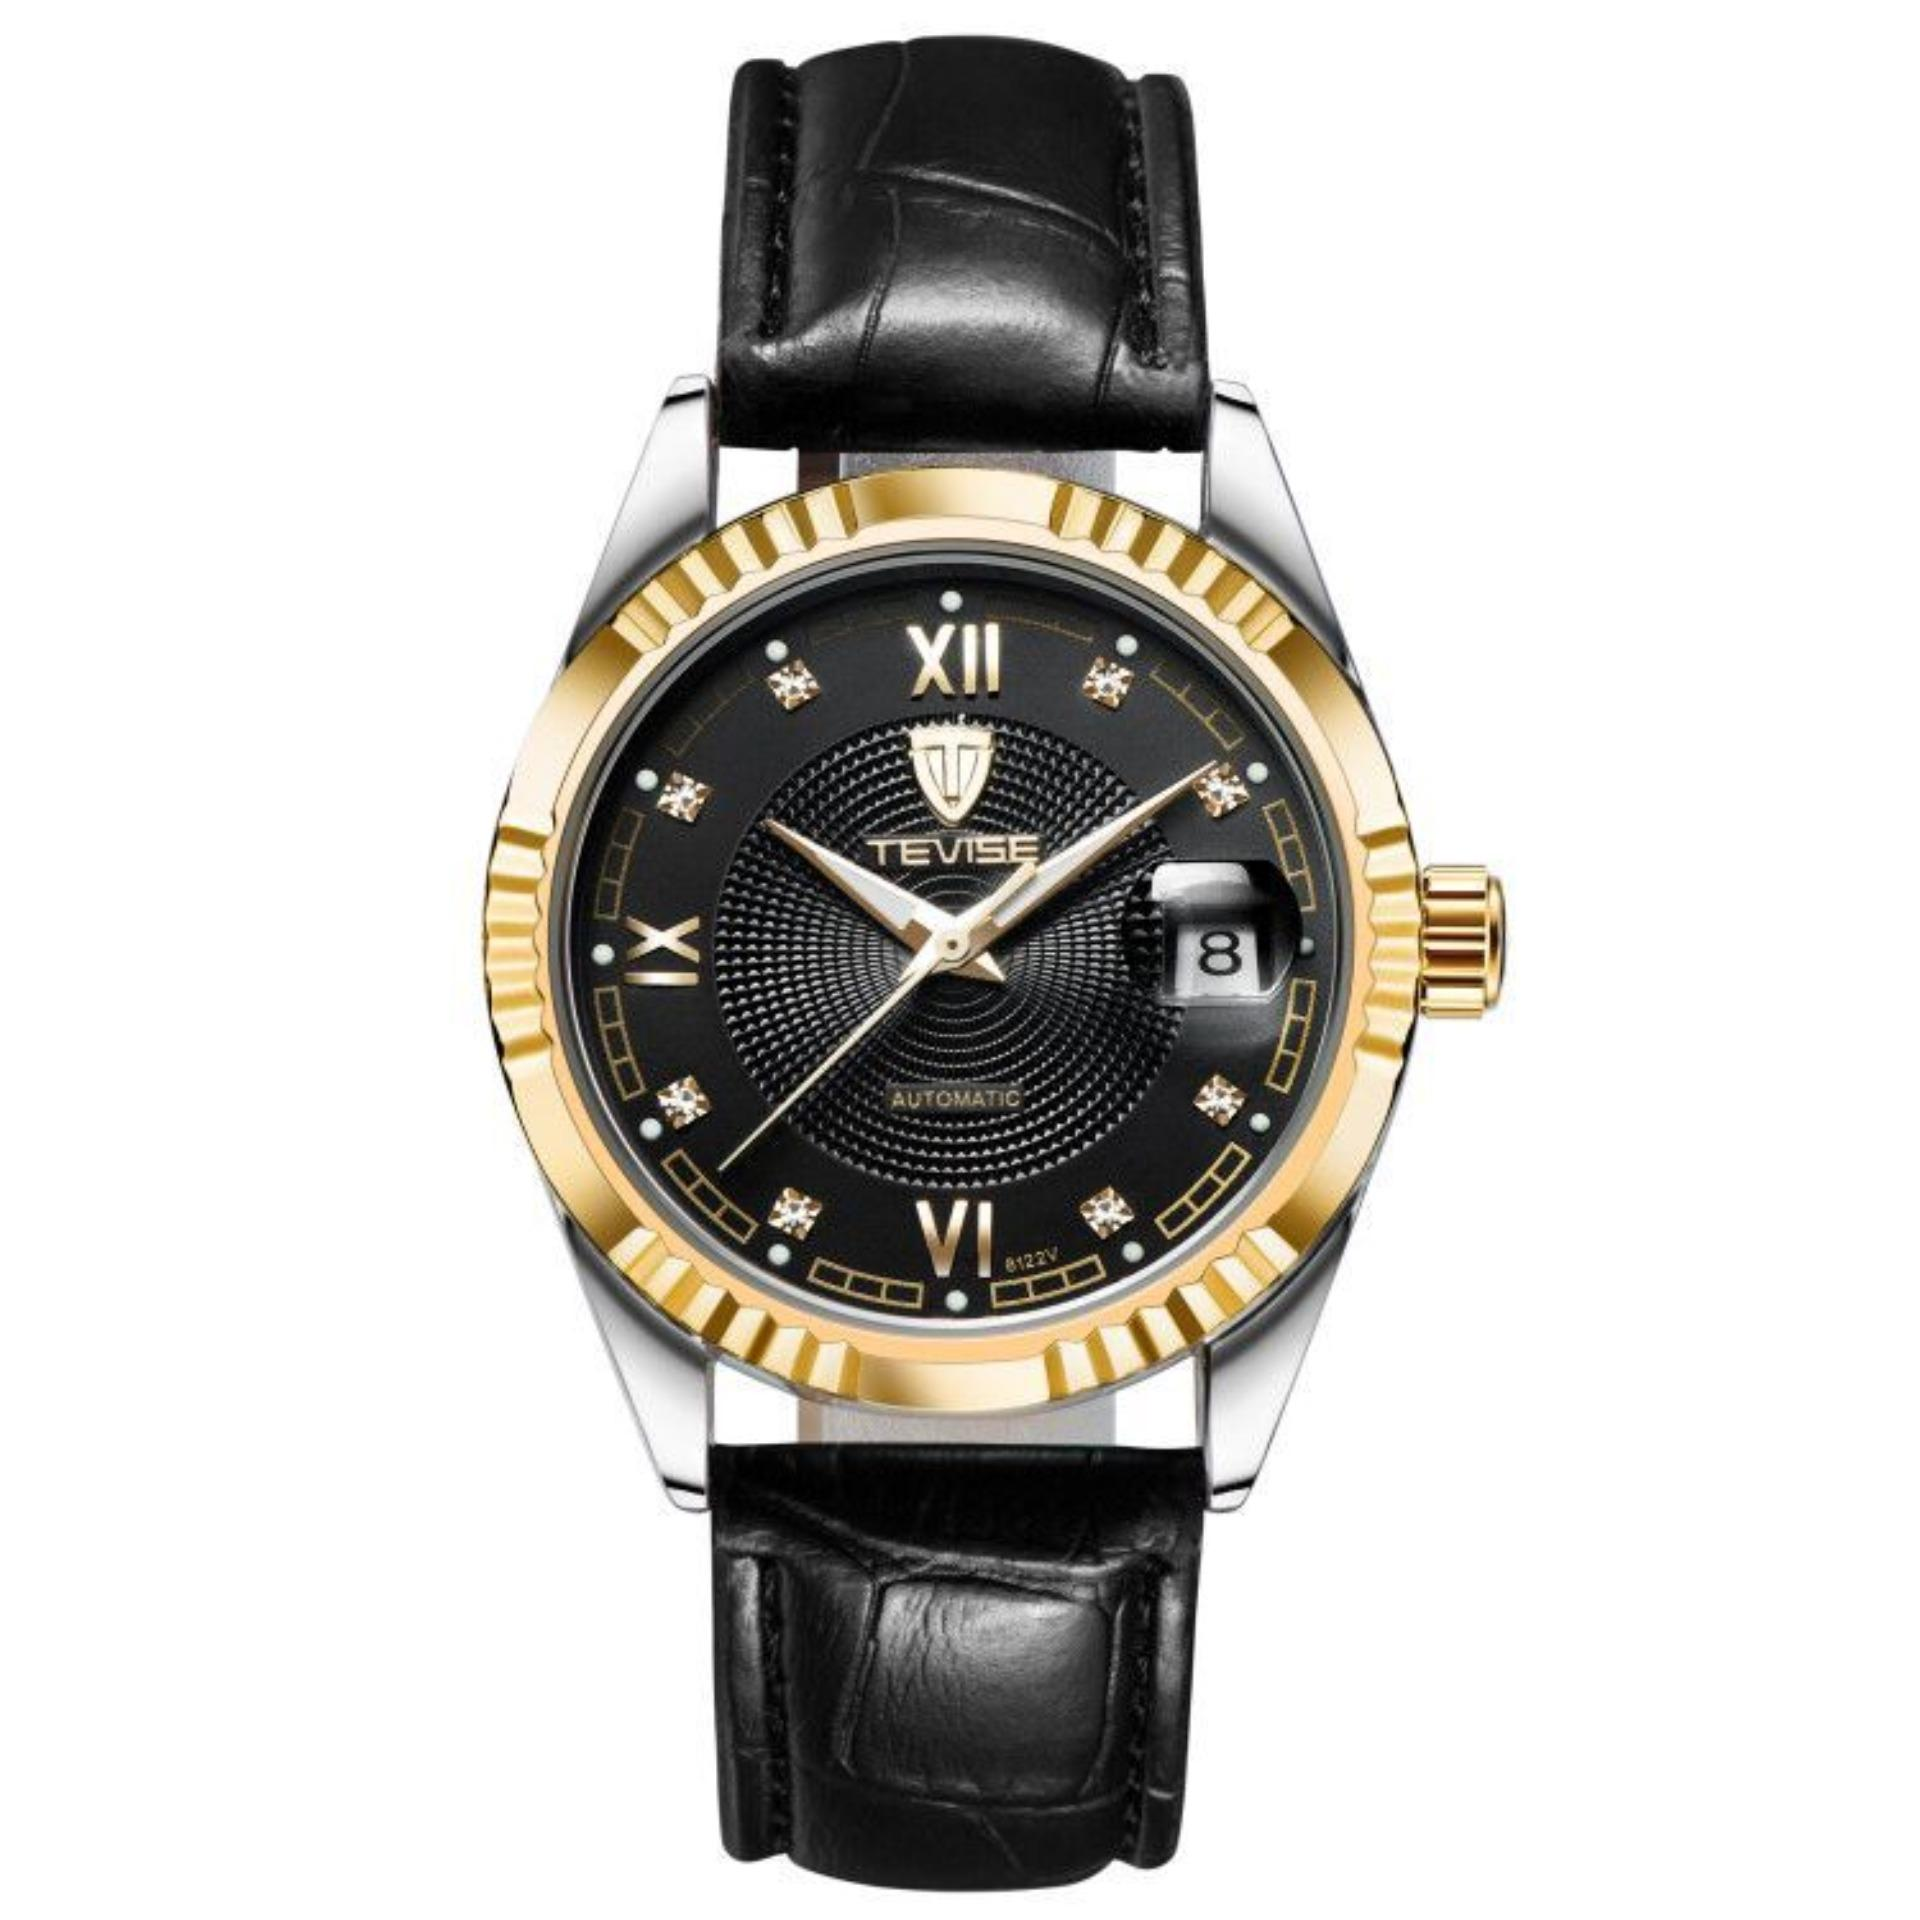 (100% Authentic)Hong Kong Top Brand of Tevise Men's Luxury Diamonds Transparent Skeleton Automatic Mechanical Watch for Business and fashion or casual  - intl